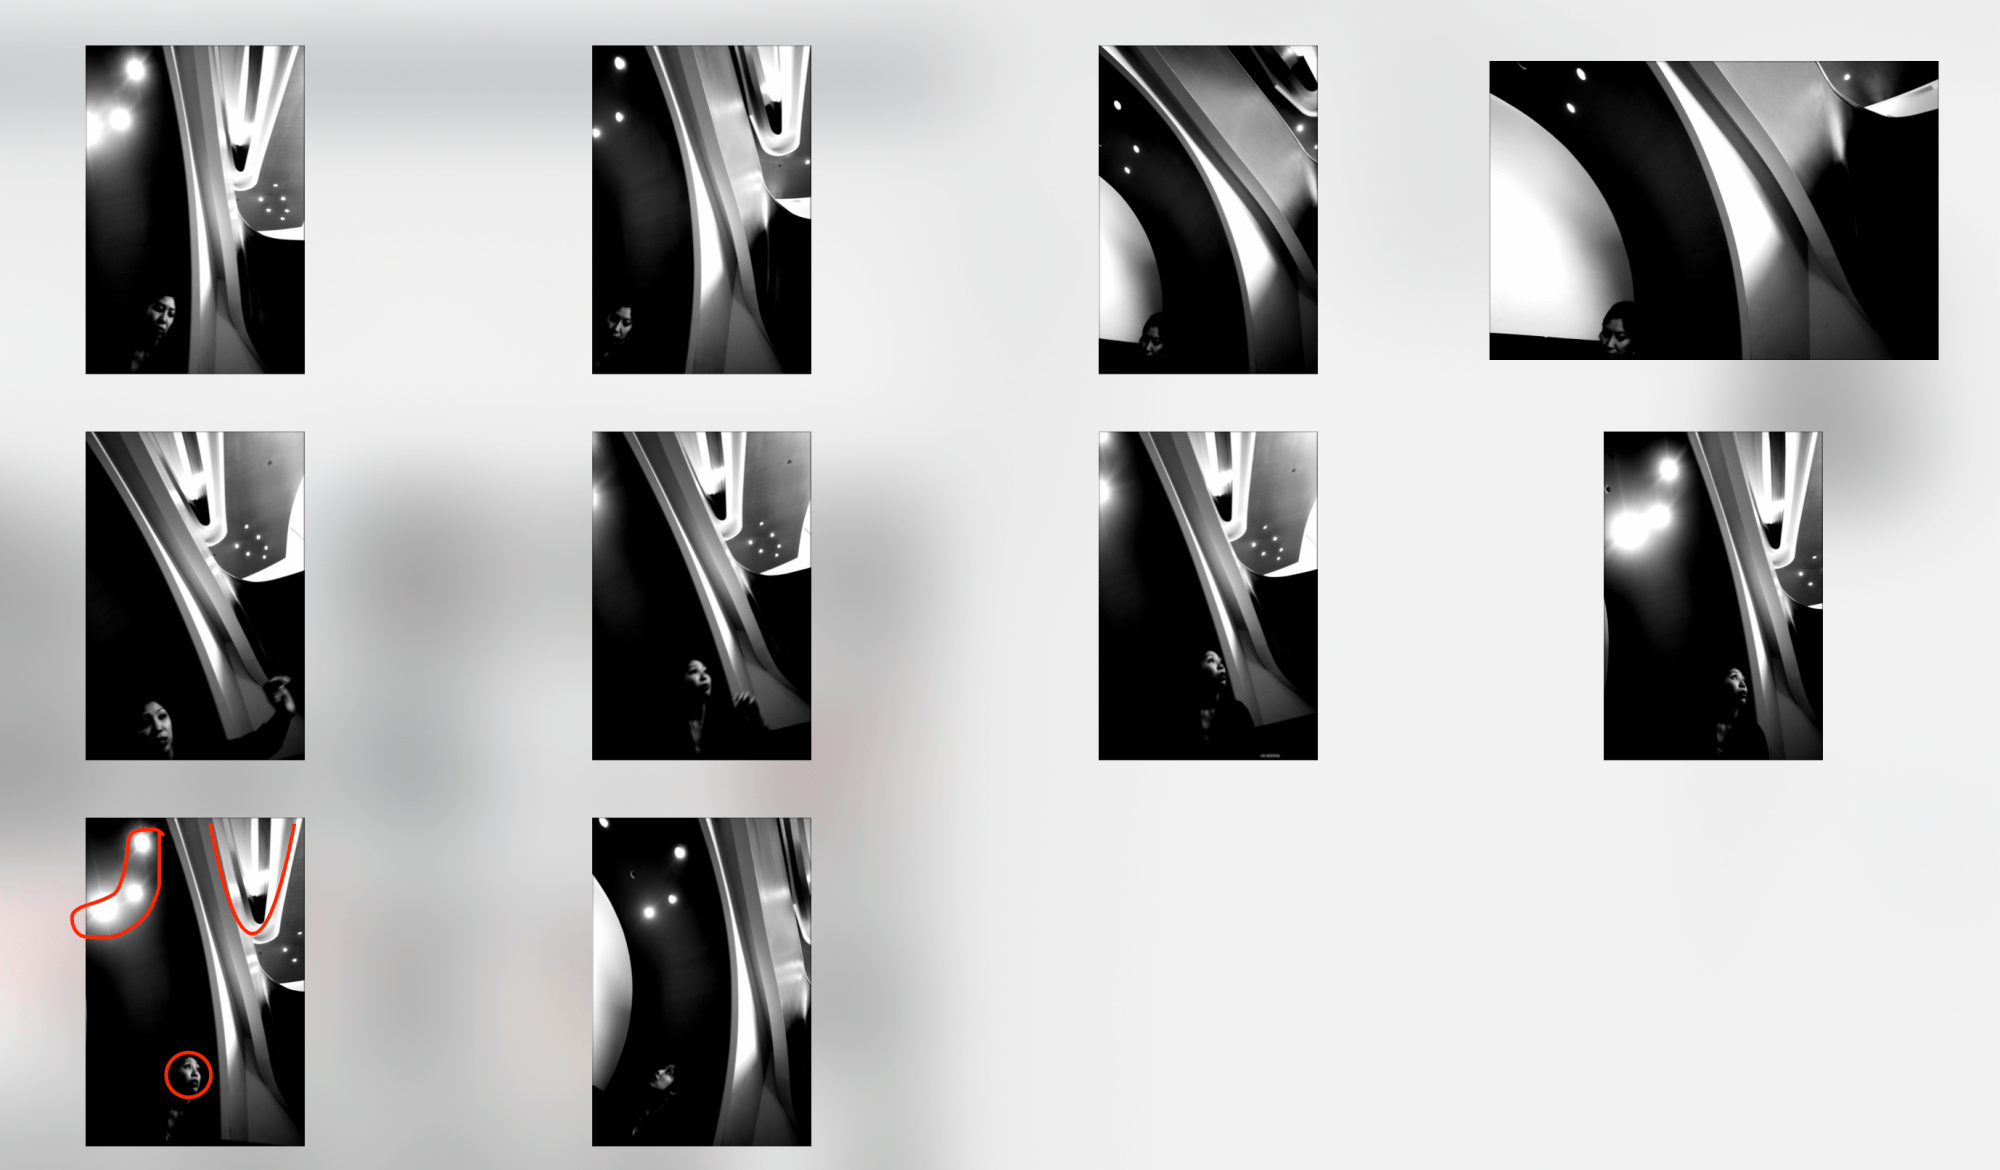 Note how you can easily judge a composition as a small thumb nail quicker than seeing it all full-screen.